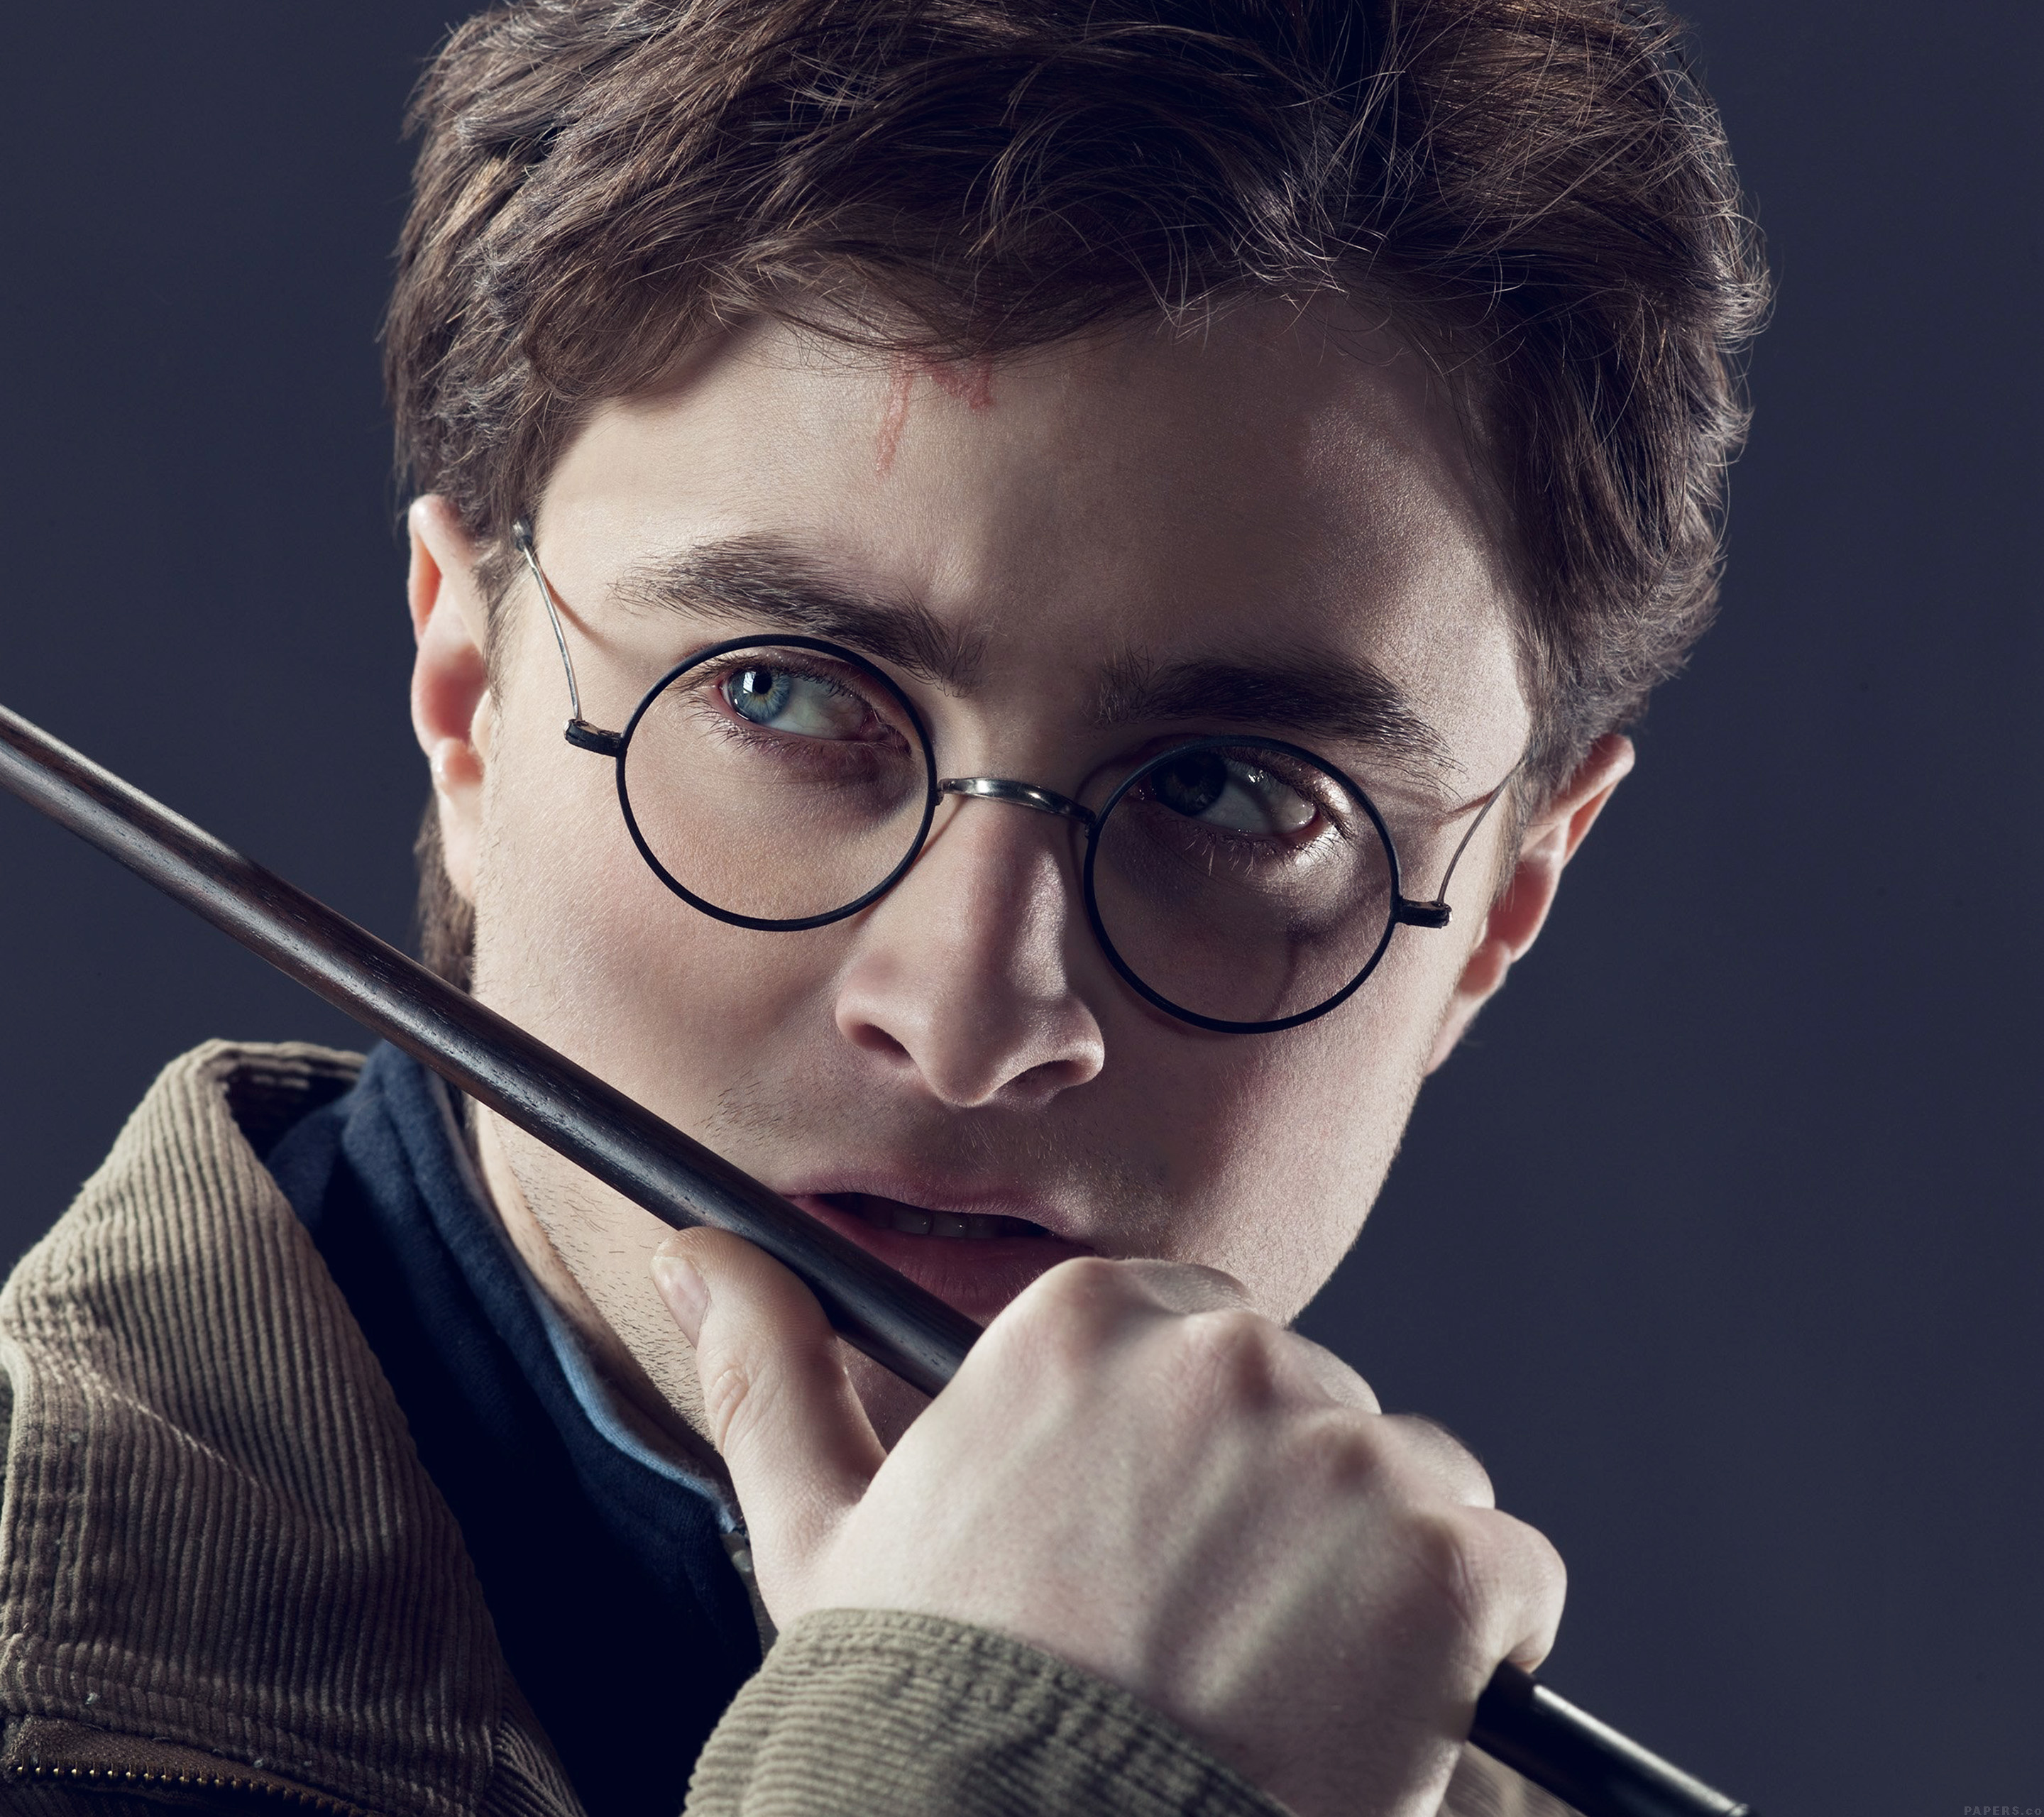 Essay on harry potter and the order of the phoenix cast how to write ...